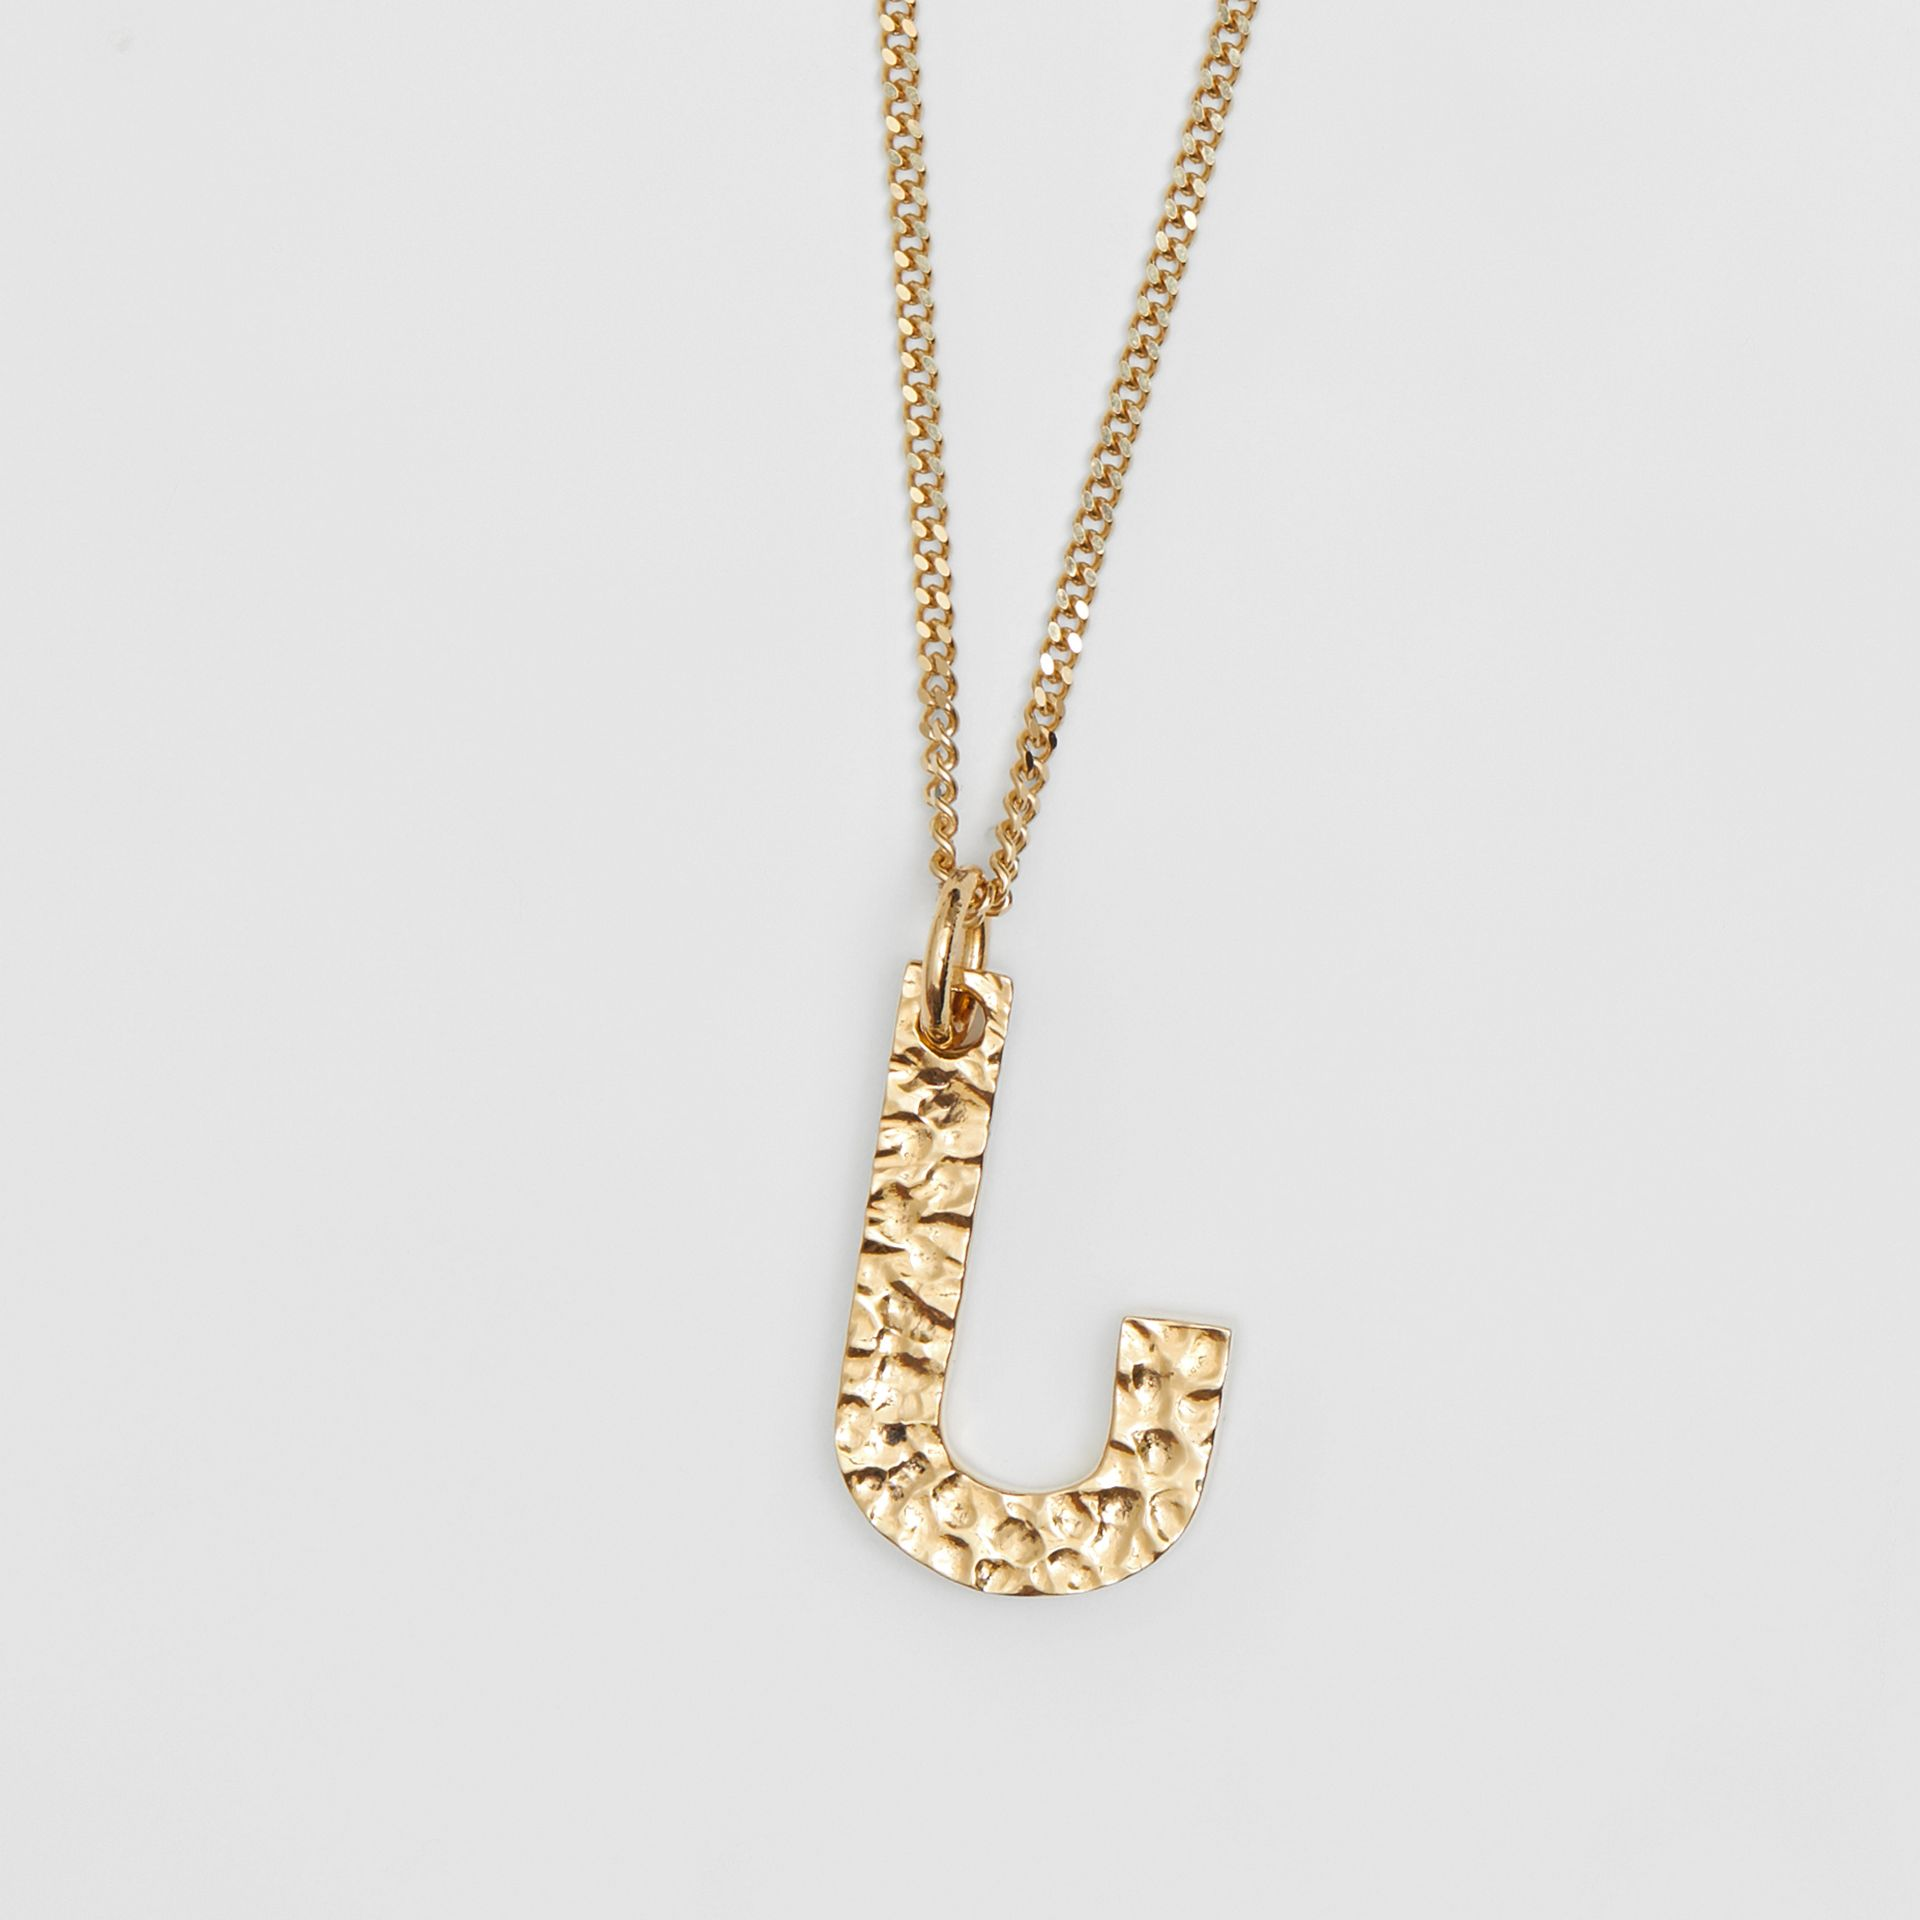 'J' Alphabet Charm Gold-plated Necklace in Light - Women | Burberry United Kingdom - gallery image 2